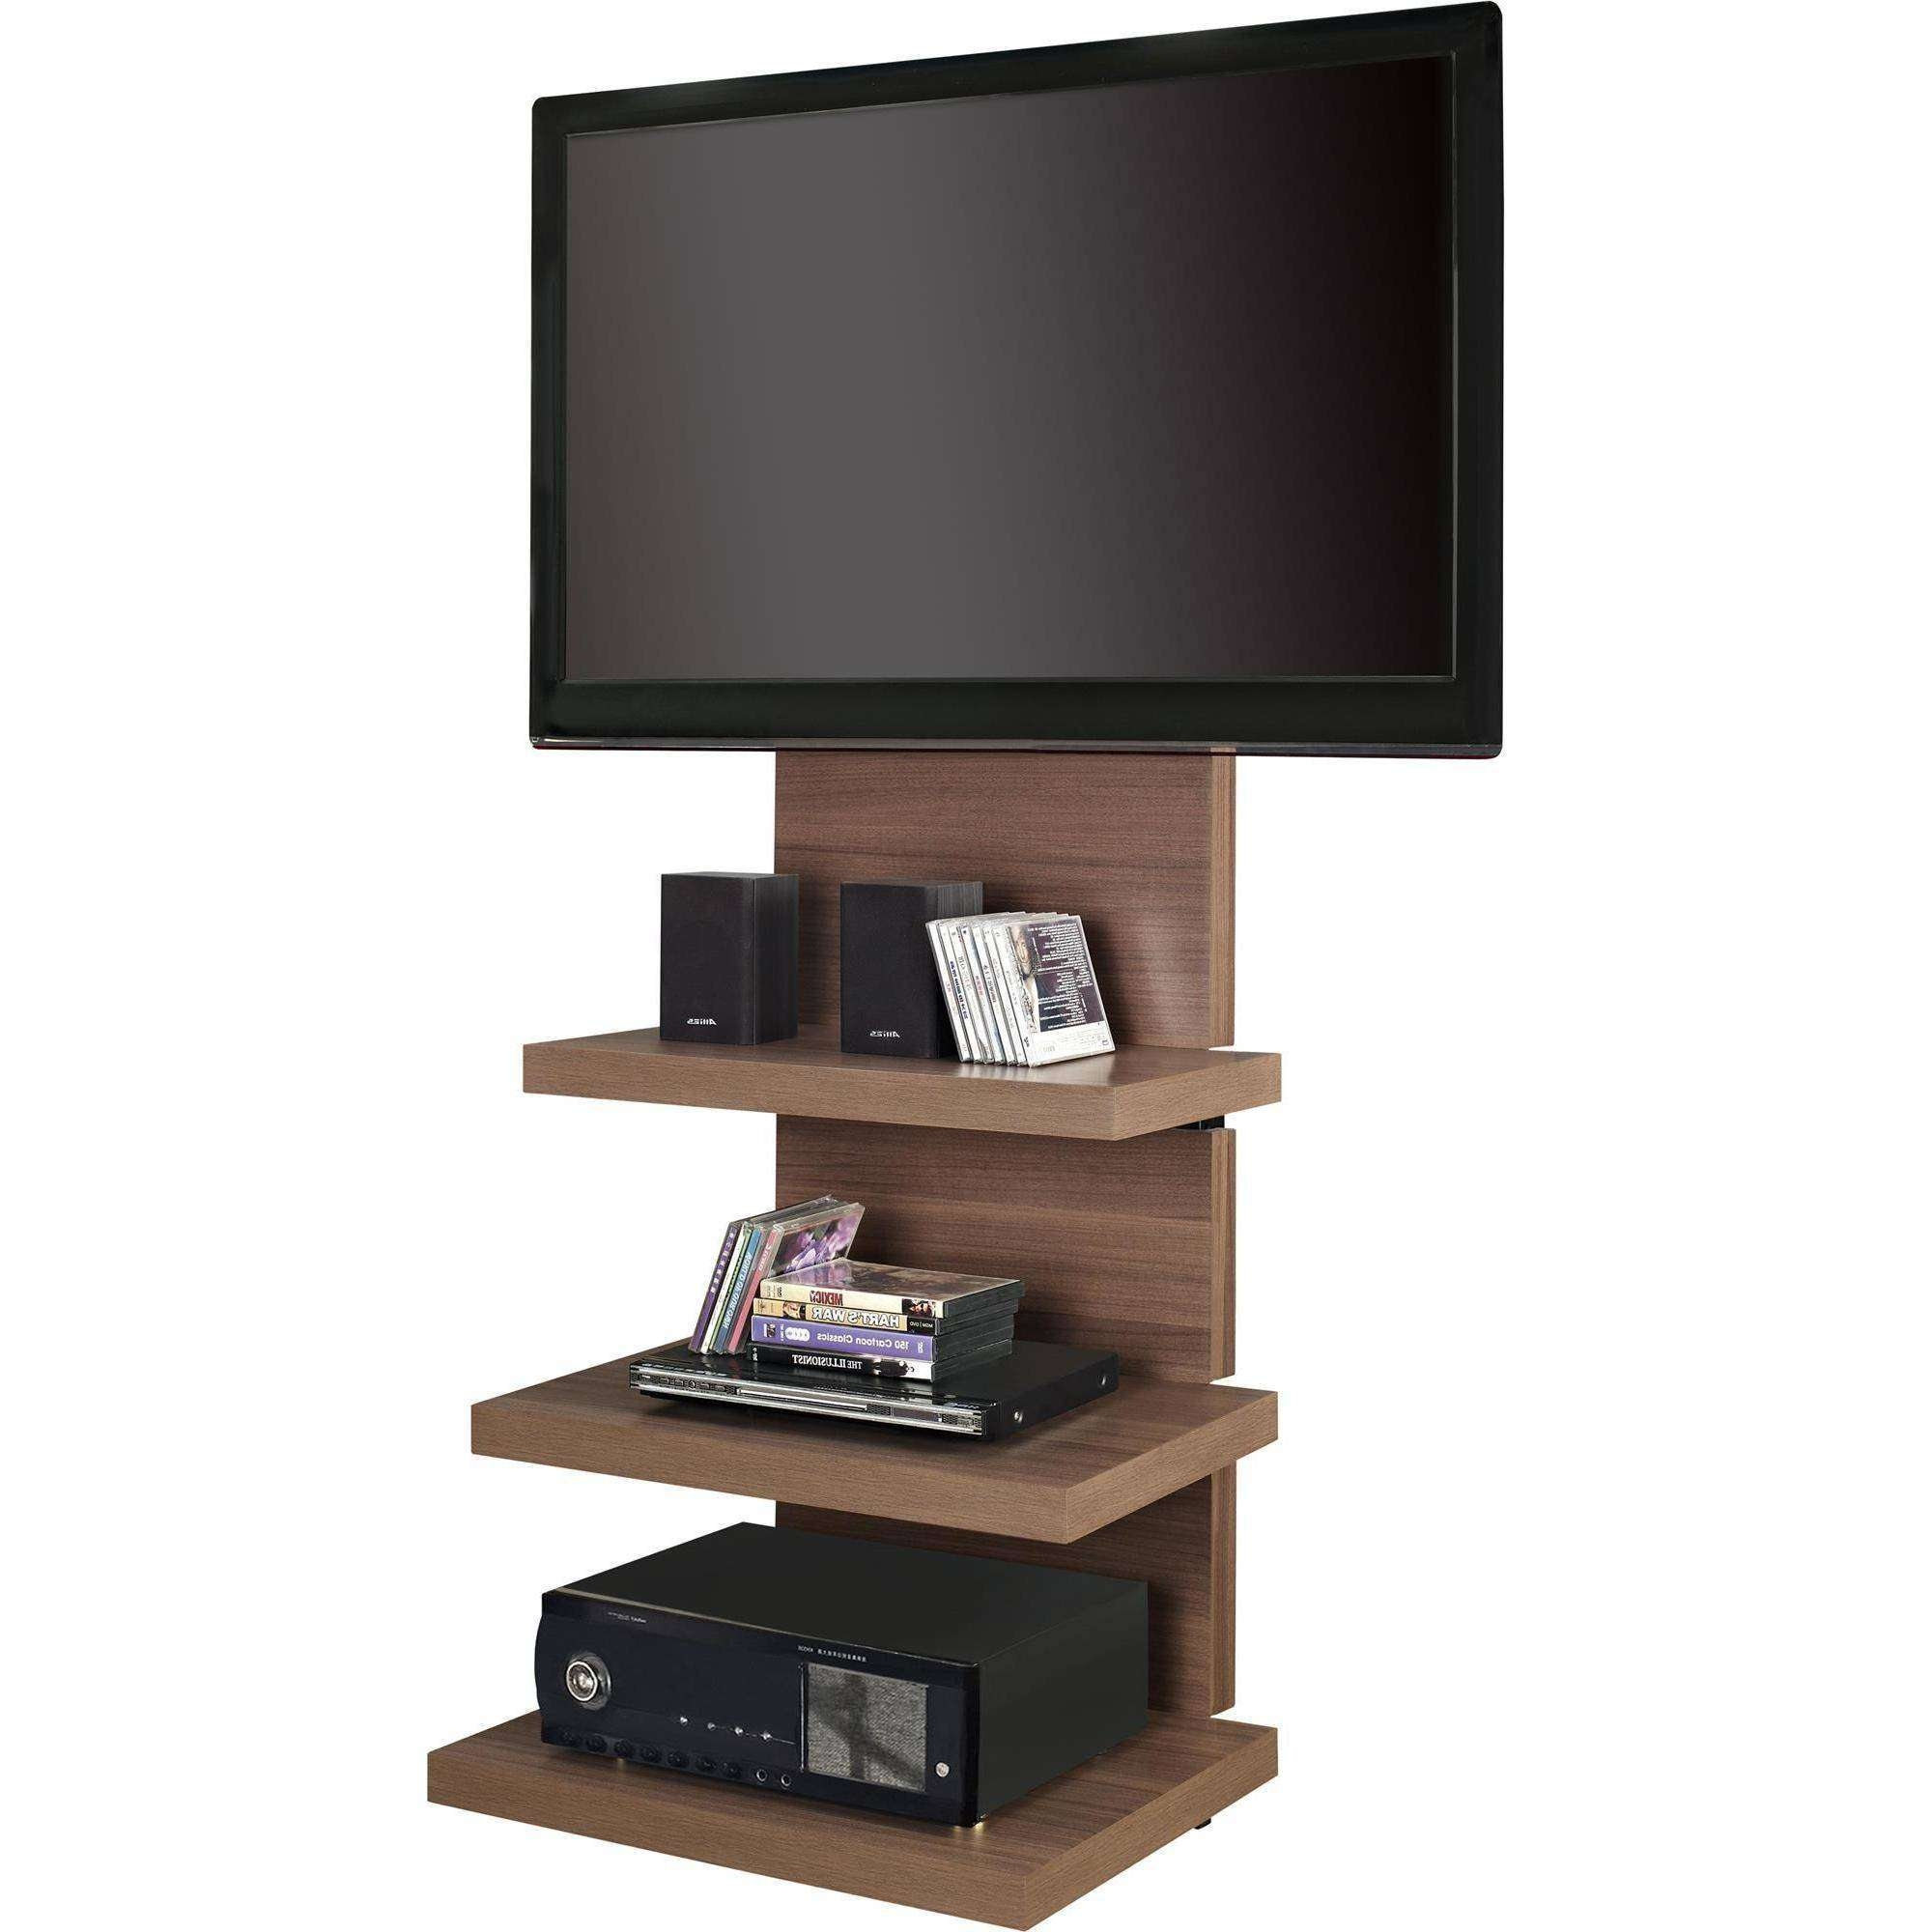 Ameriwood Home Elevation Altramount Tv Stand For Tvs Up To 60 With Regard To Modern Tv Stands With Mount (View 1 of 15)